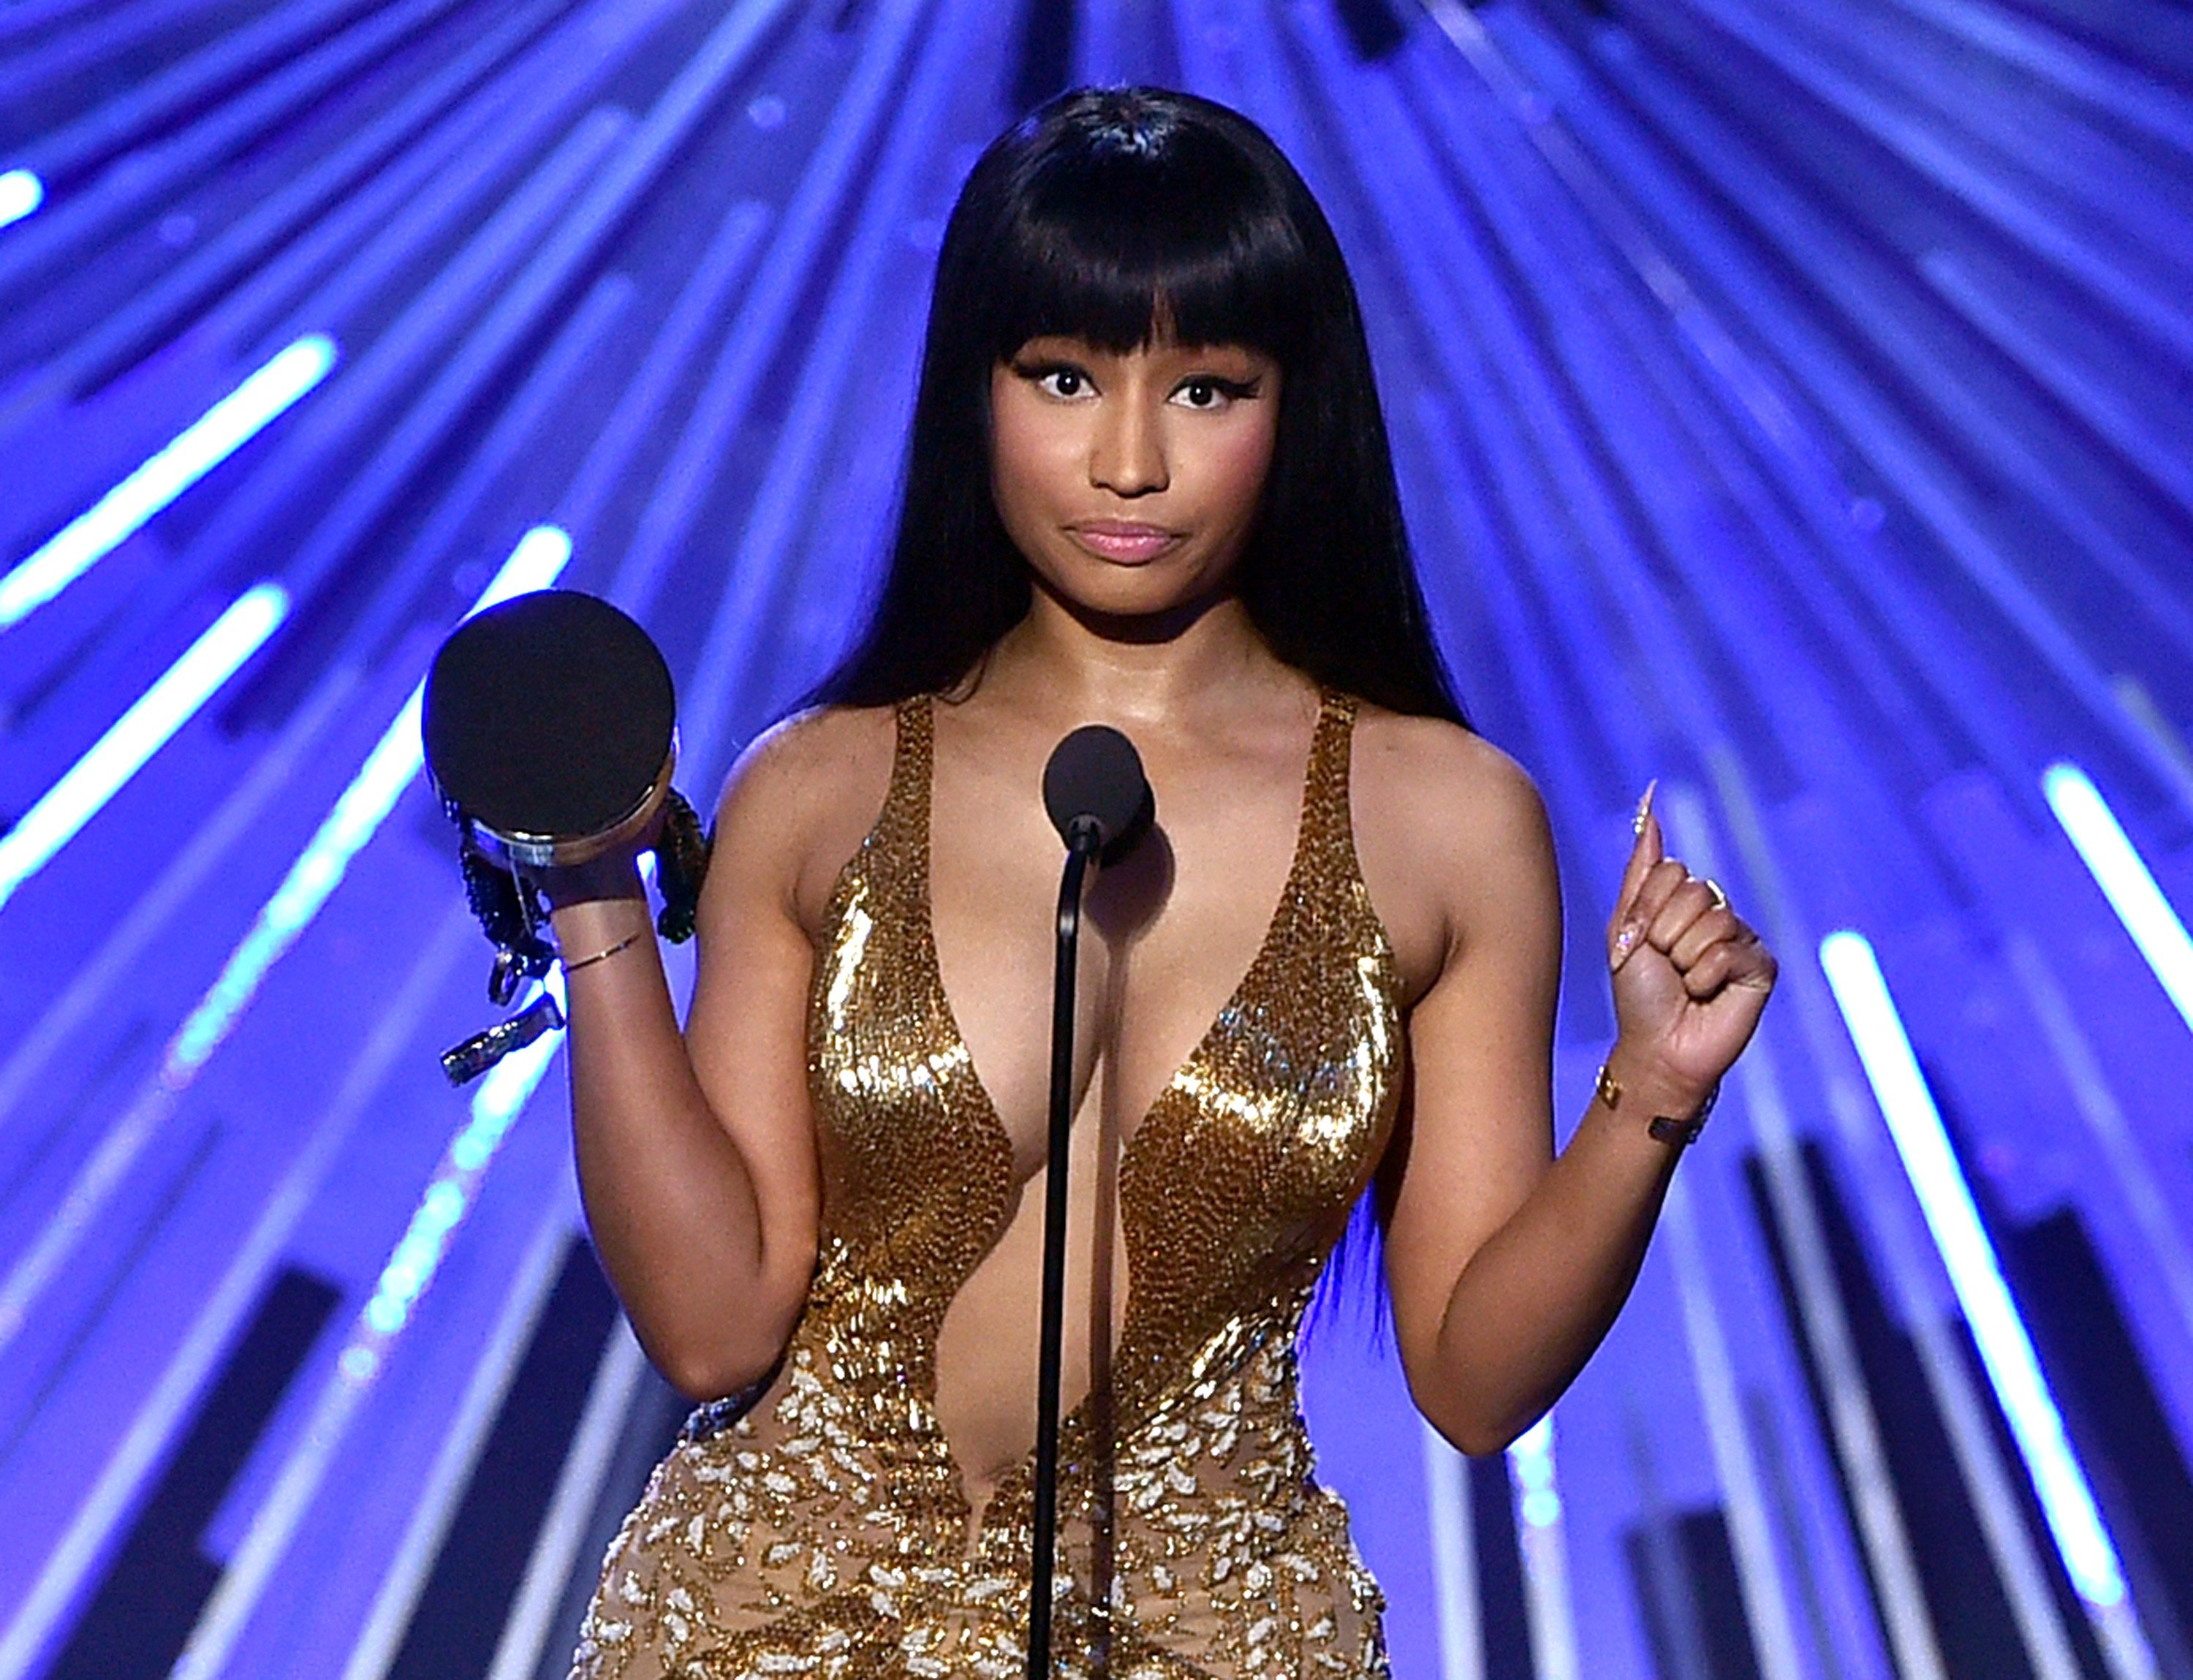 Nicki Minaj at the MTV Video Music Awards in Los Angeles on Aug. 30, 2015 | Photo: Getty Images